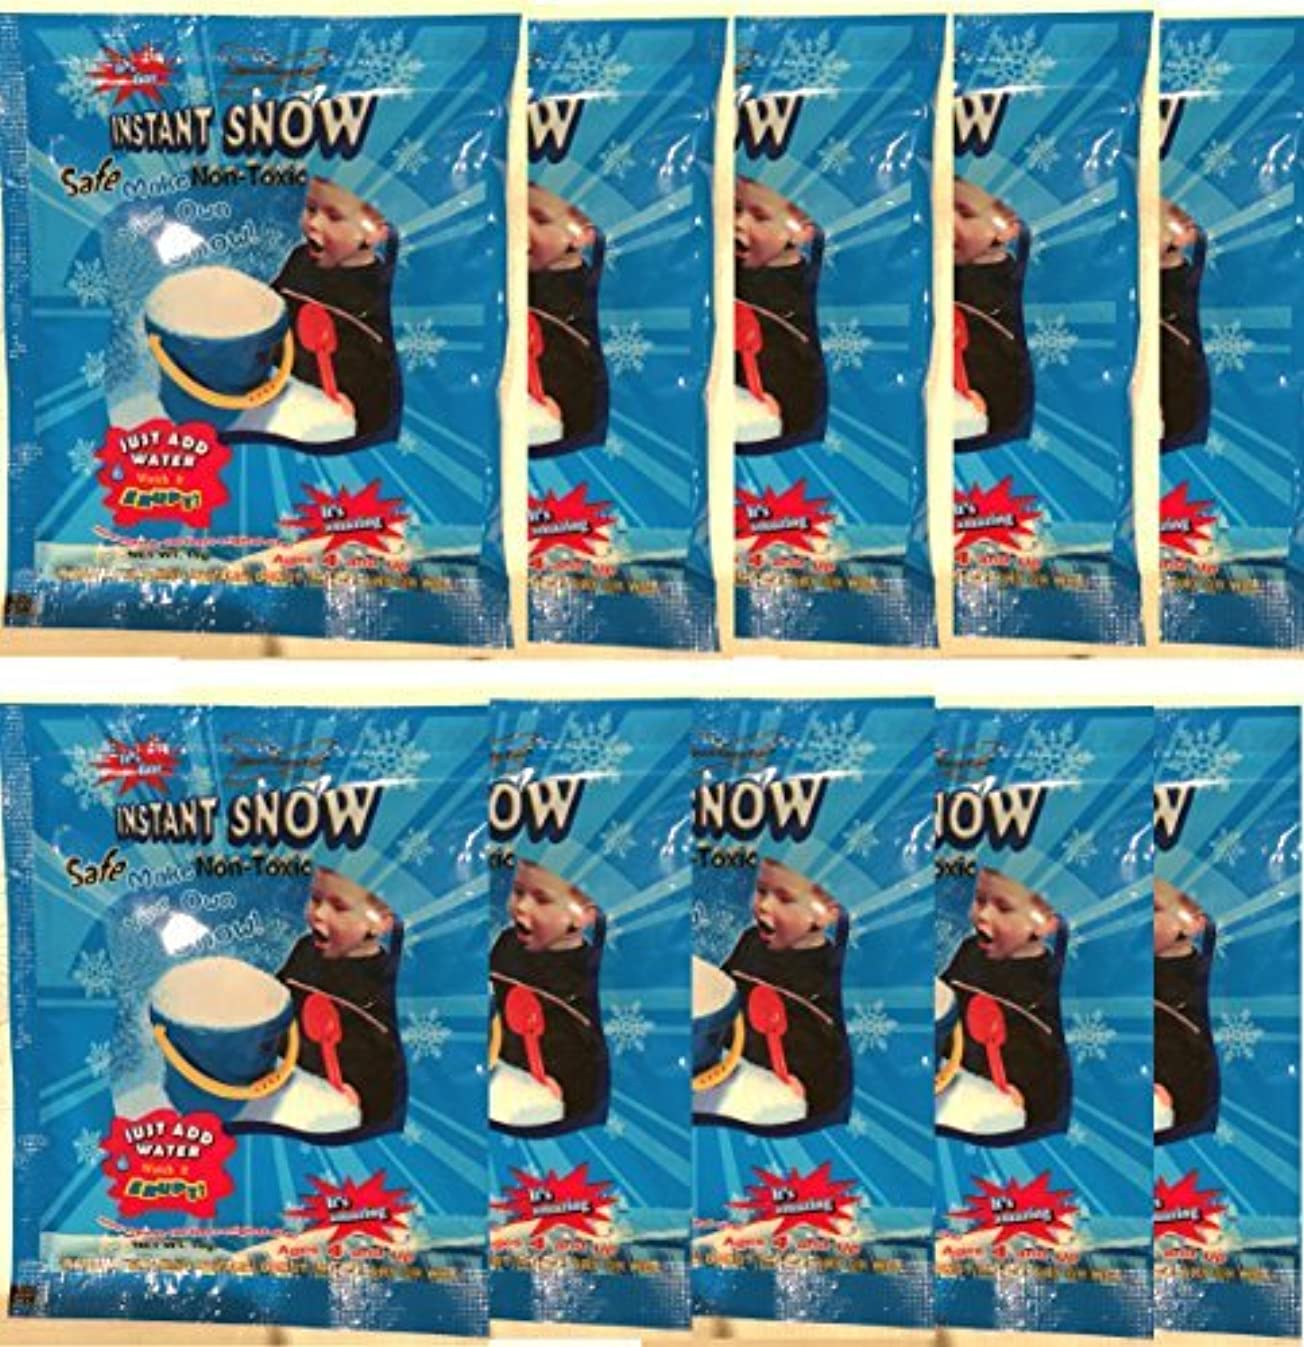 10 Pack - Instant Snow (Tm) Powder, Will Make About 40 Cups of Fluffy Instantly Snow. Model: